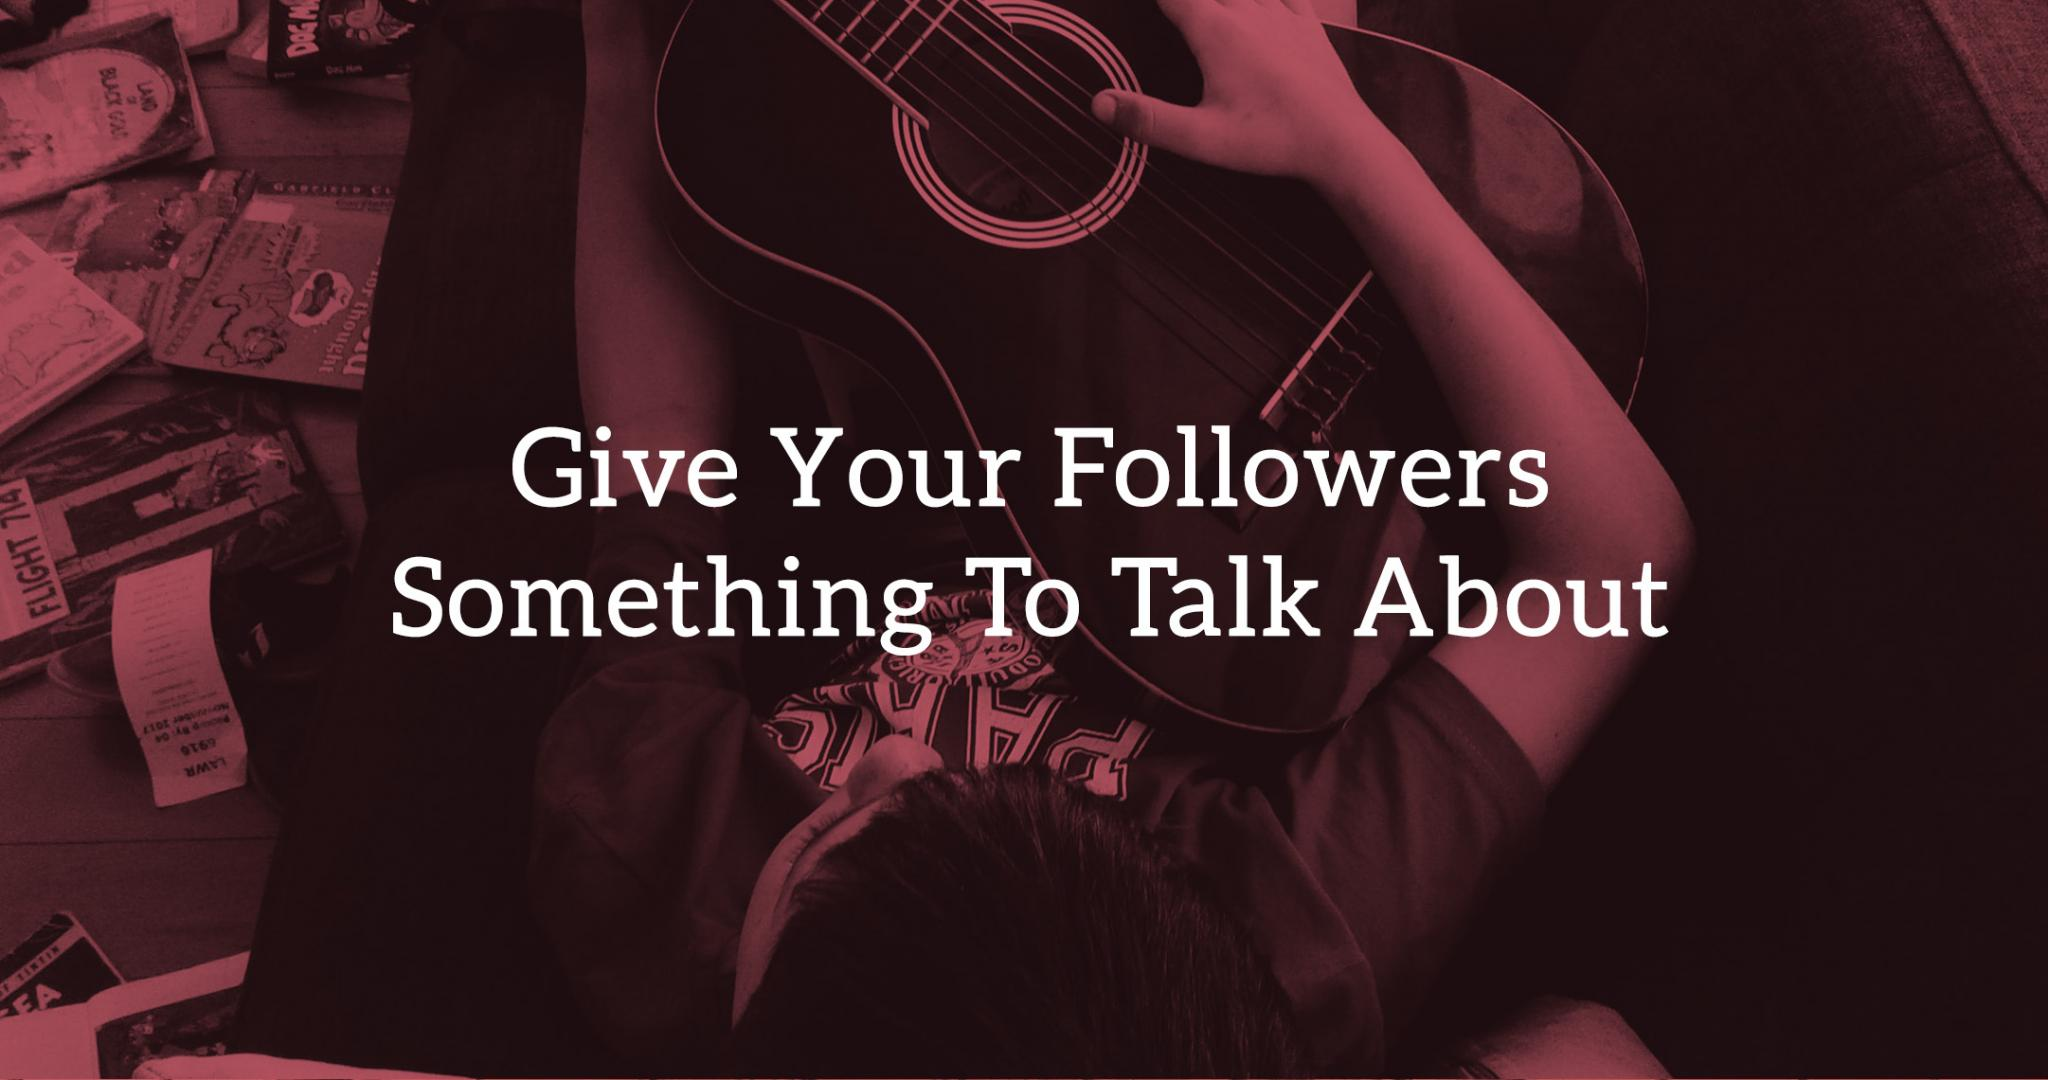 12 Ways: Give Your Followers Something To Talk About